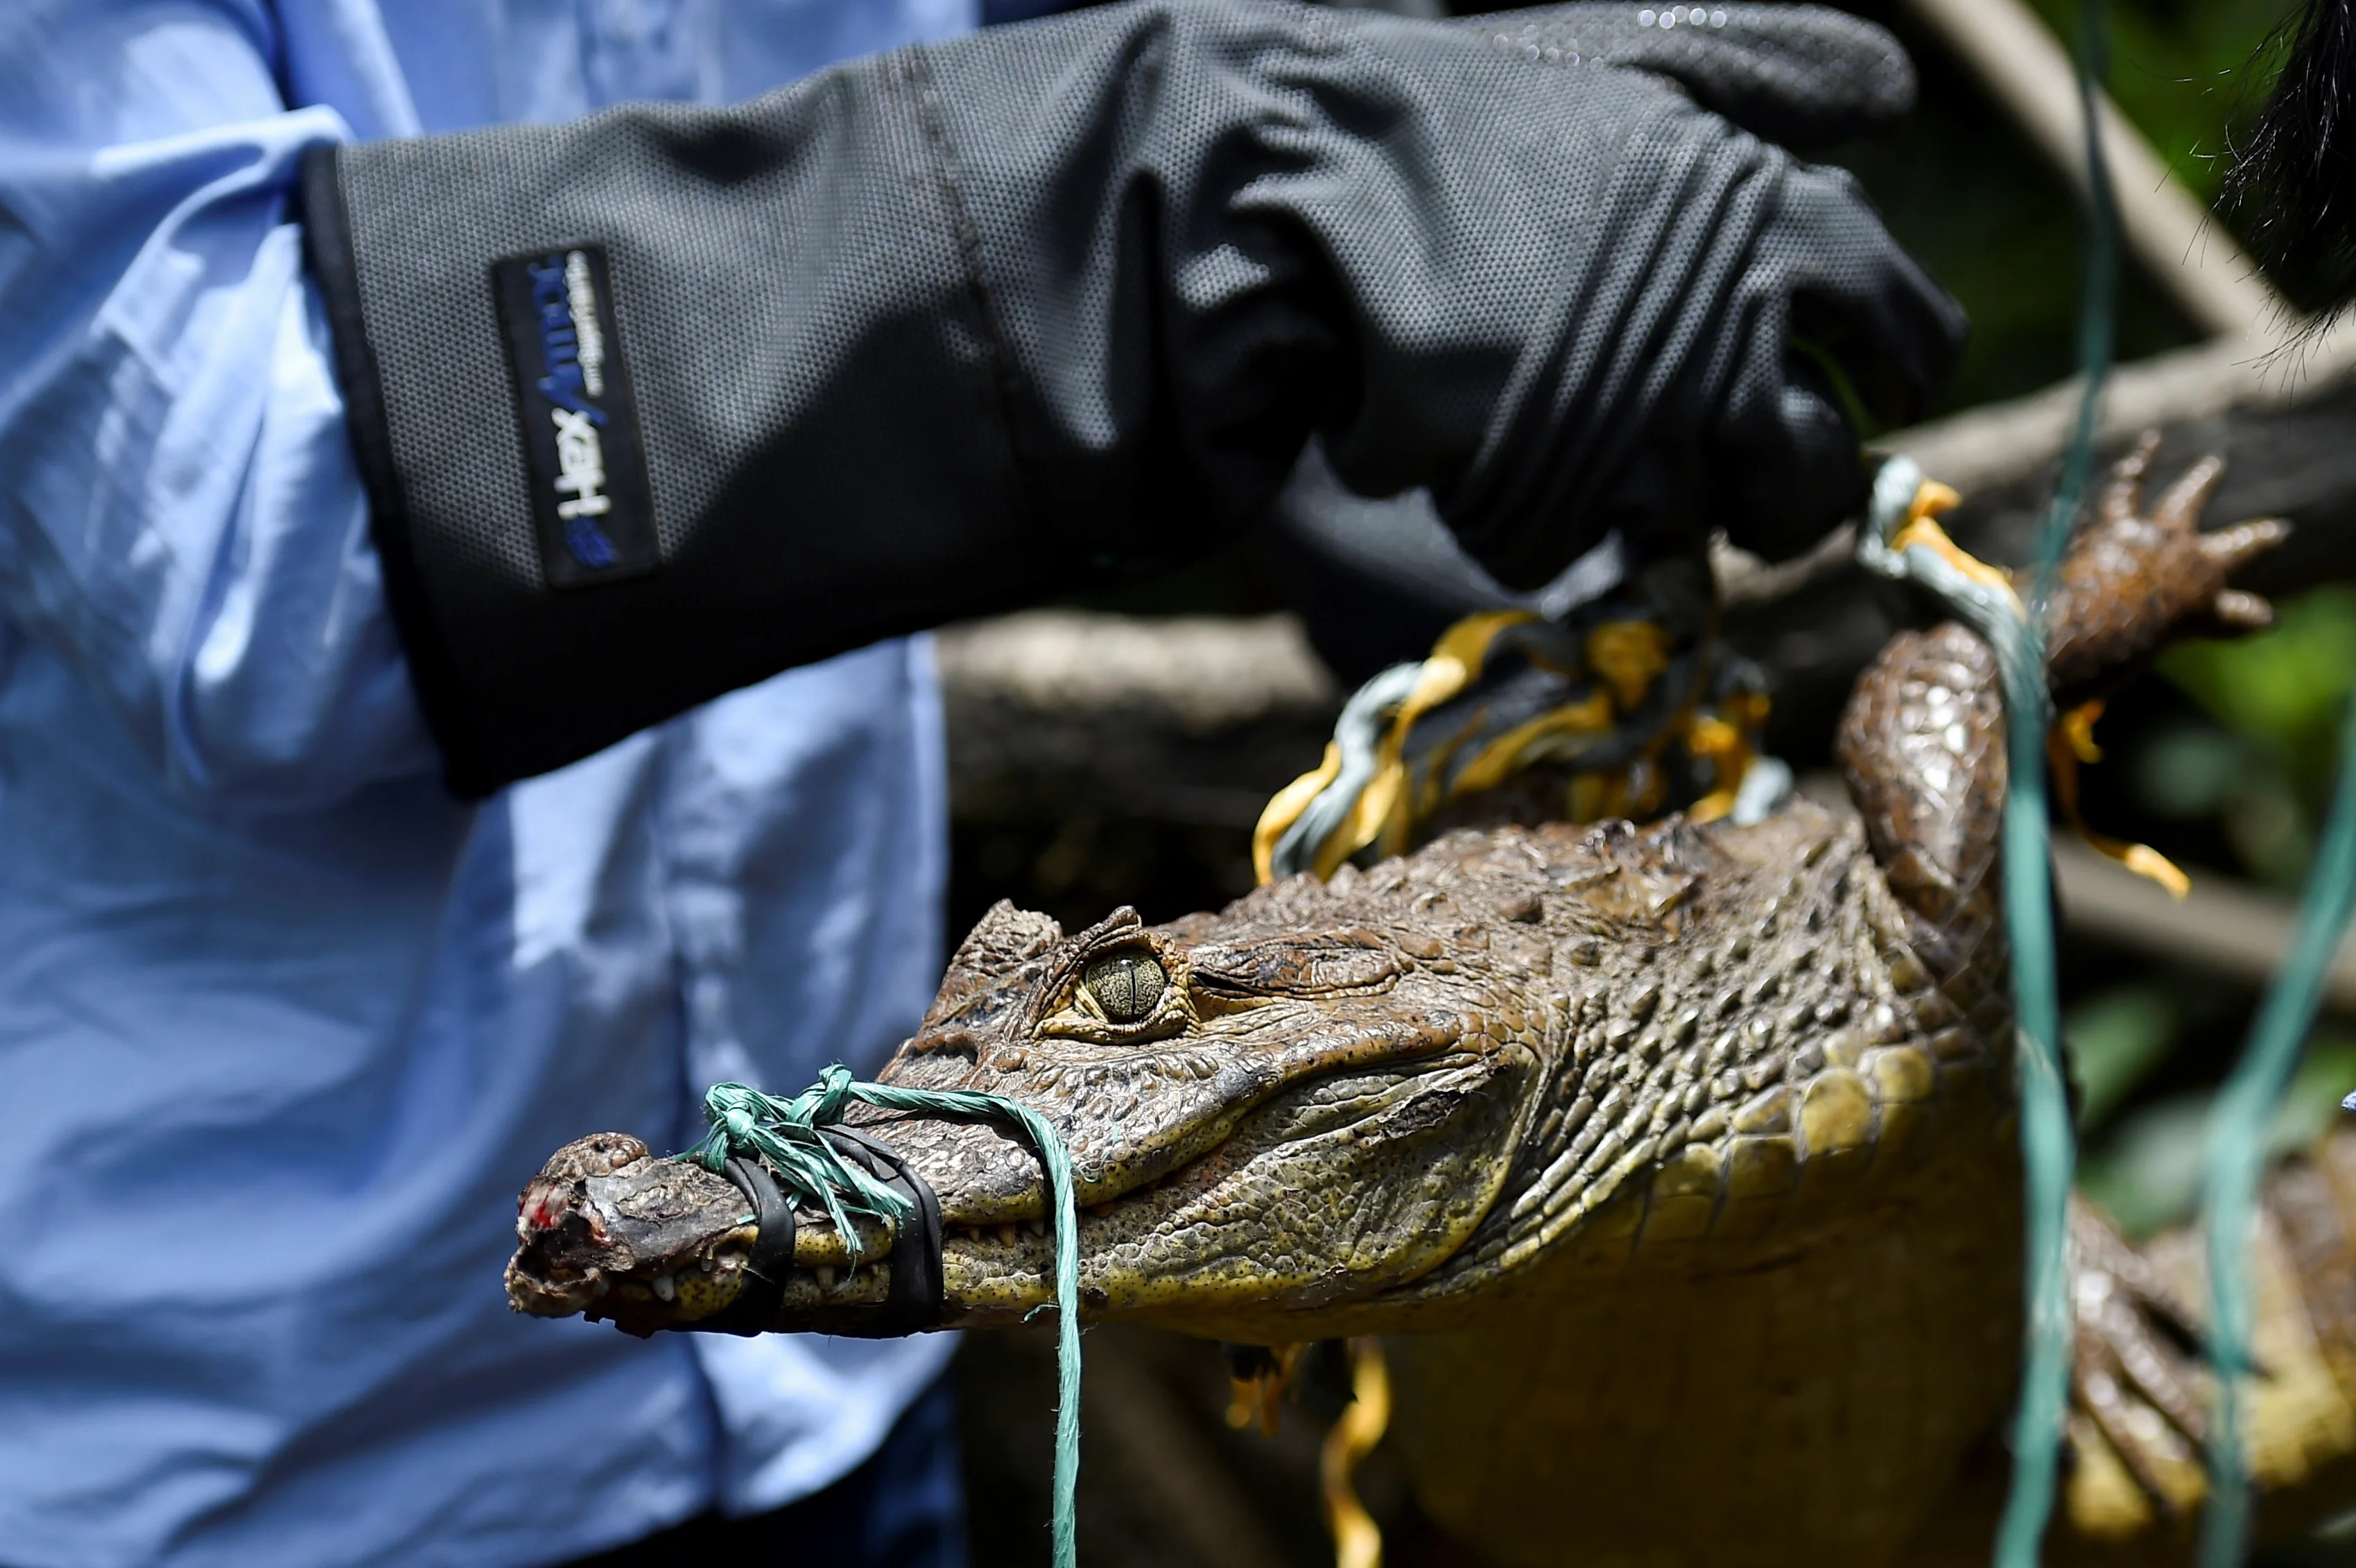 Illegal wildlife trade intrinsically linked to drugs and weapons trafficking, report finds